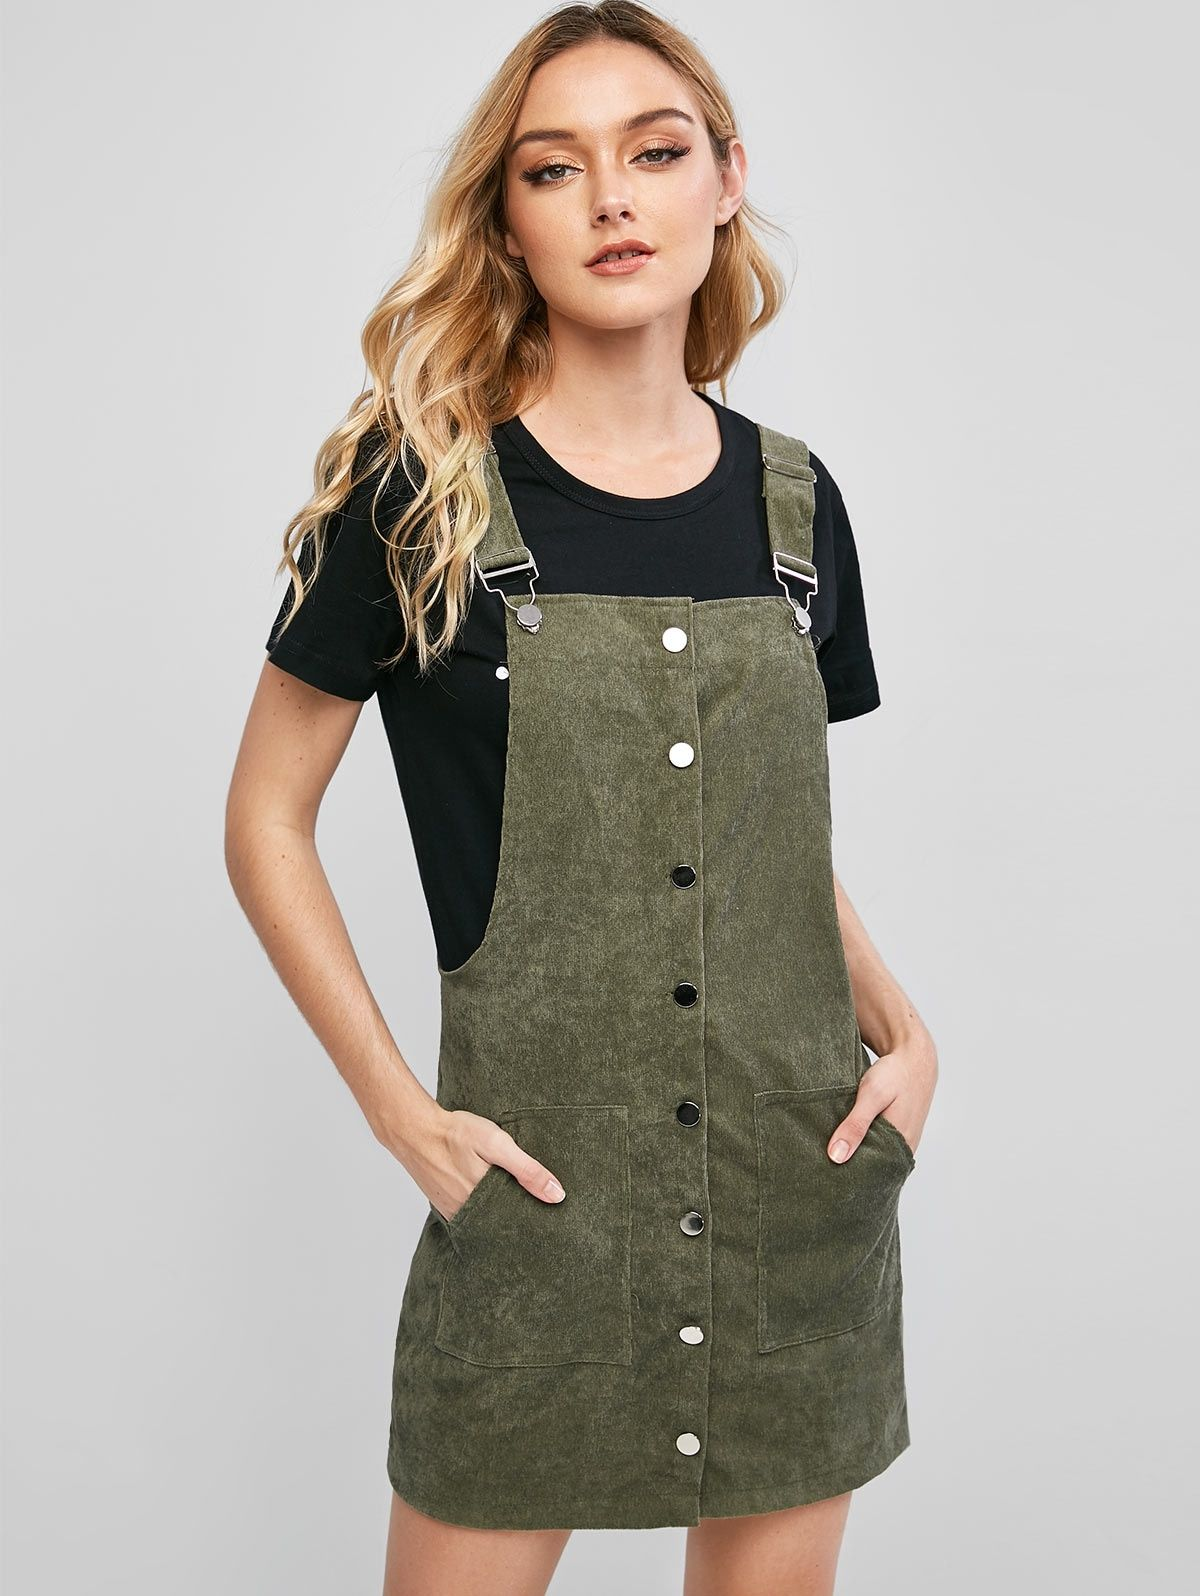 Pockets Corduroy Button Up Overalls Dress Camouflage Green Affiliate Button Corduroy Pocke Overall Dress Cute Casual Dresses Long Sleeve Casual Dress [ 1596 x 1200 Pixel ]